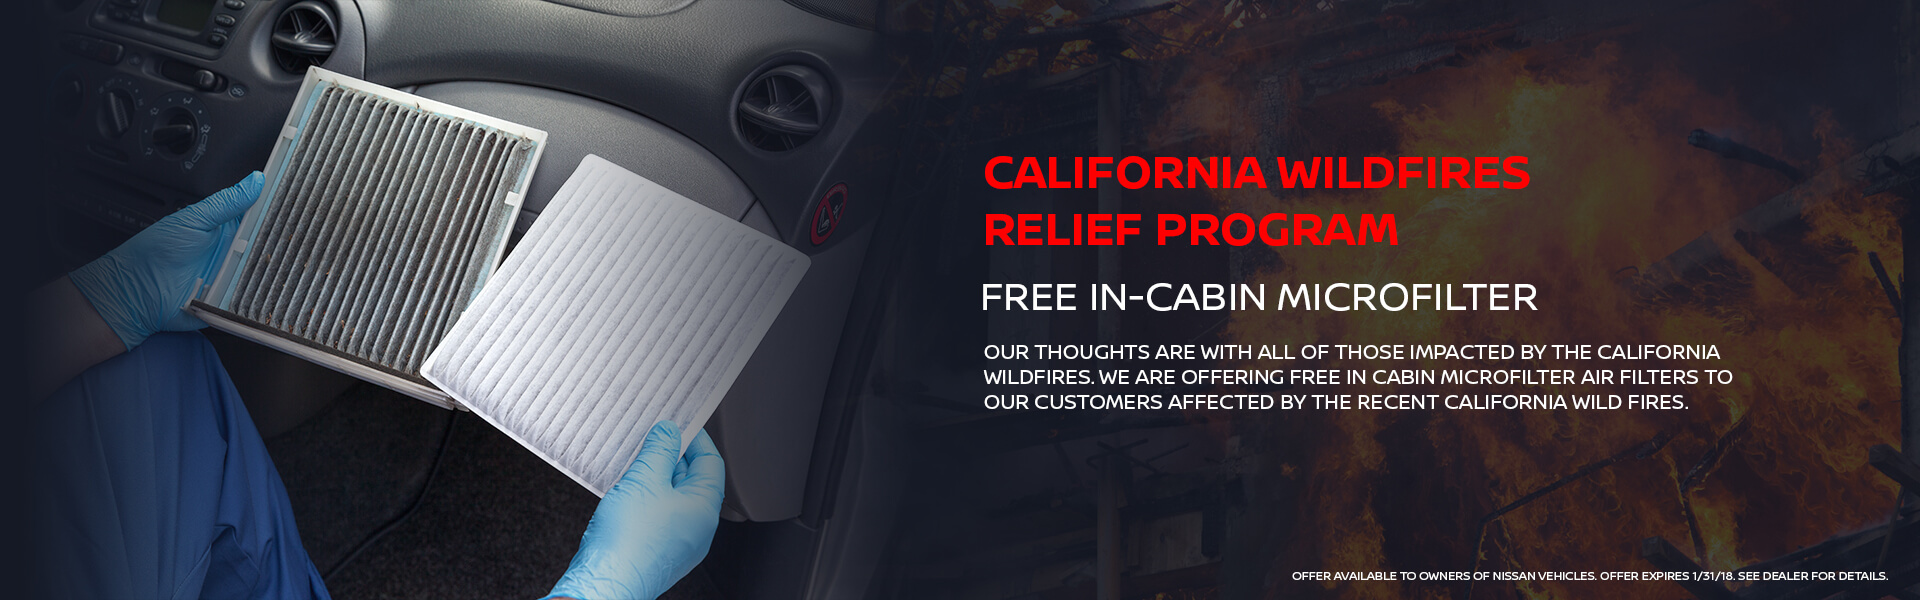 Free In-Cabin Microfilter